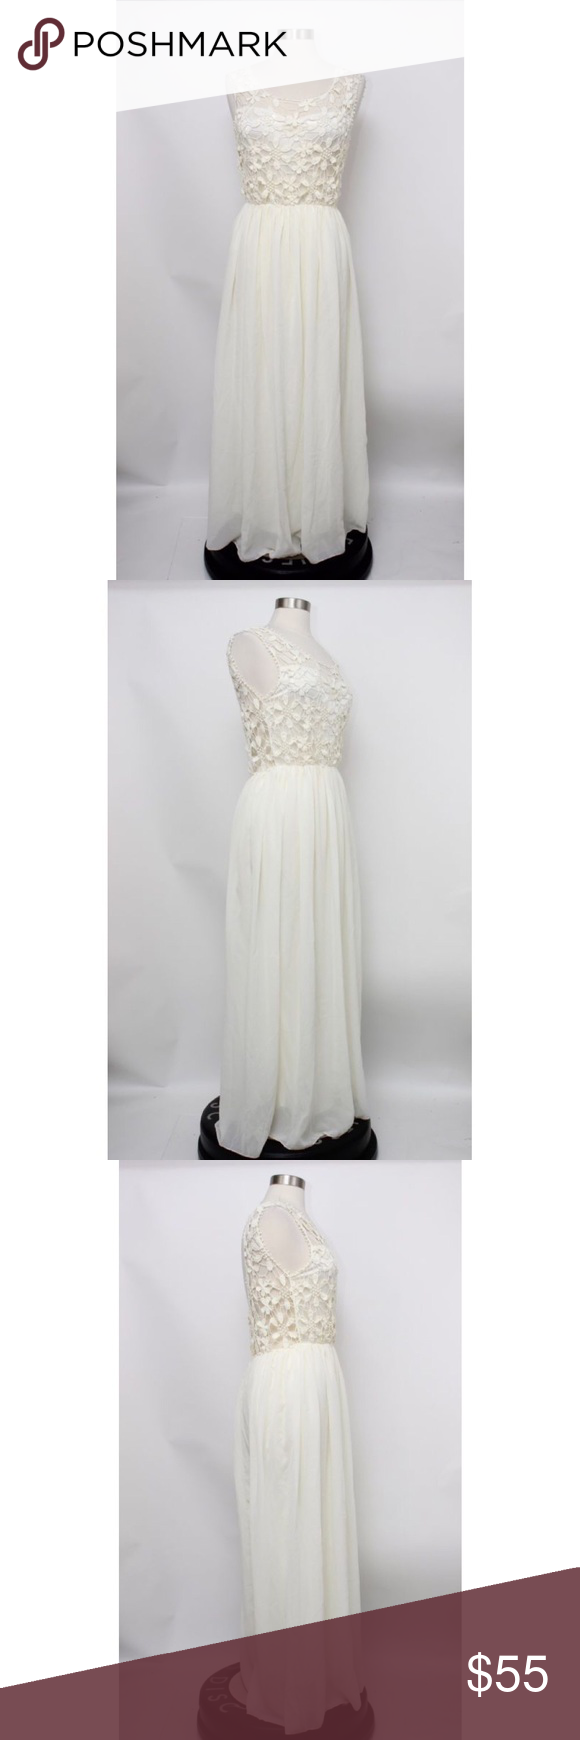 Vintage s beige crochet maxi wedding dress vintage s beige